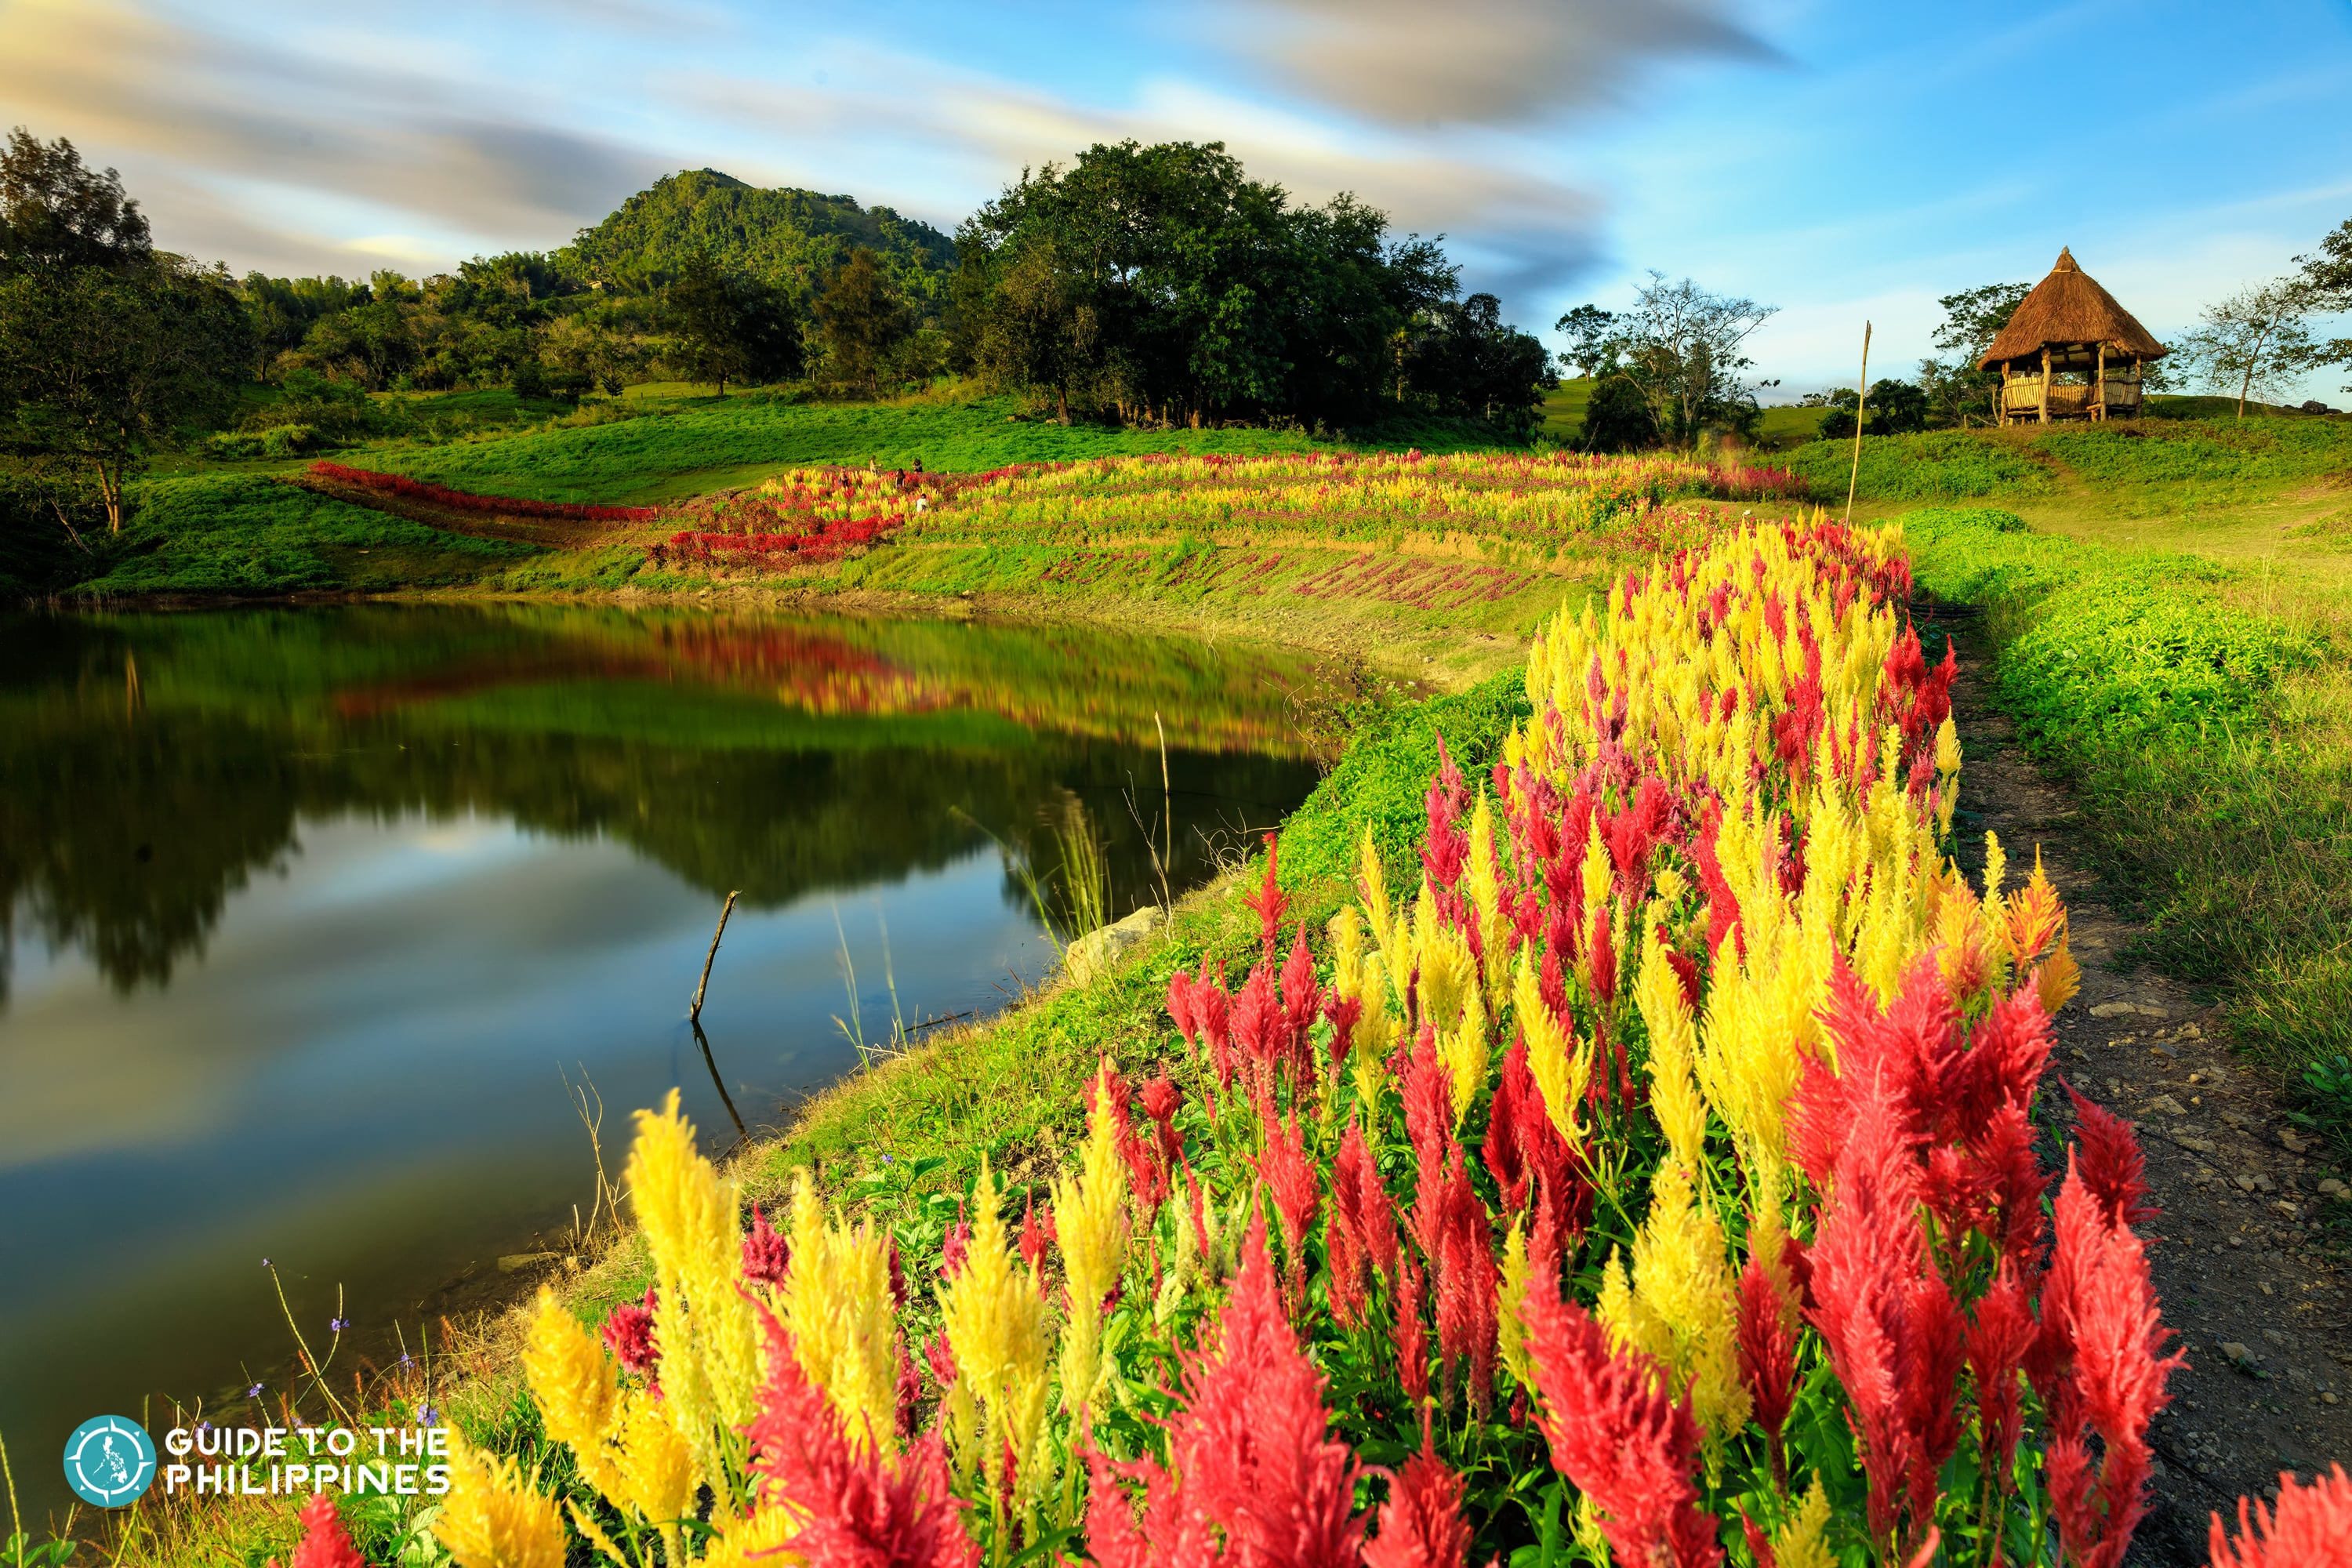 Colorful view of the Sirao Flower Farm in Cebu